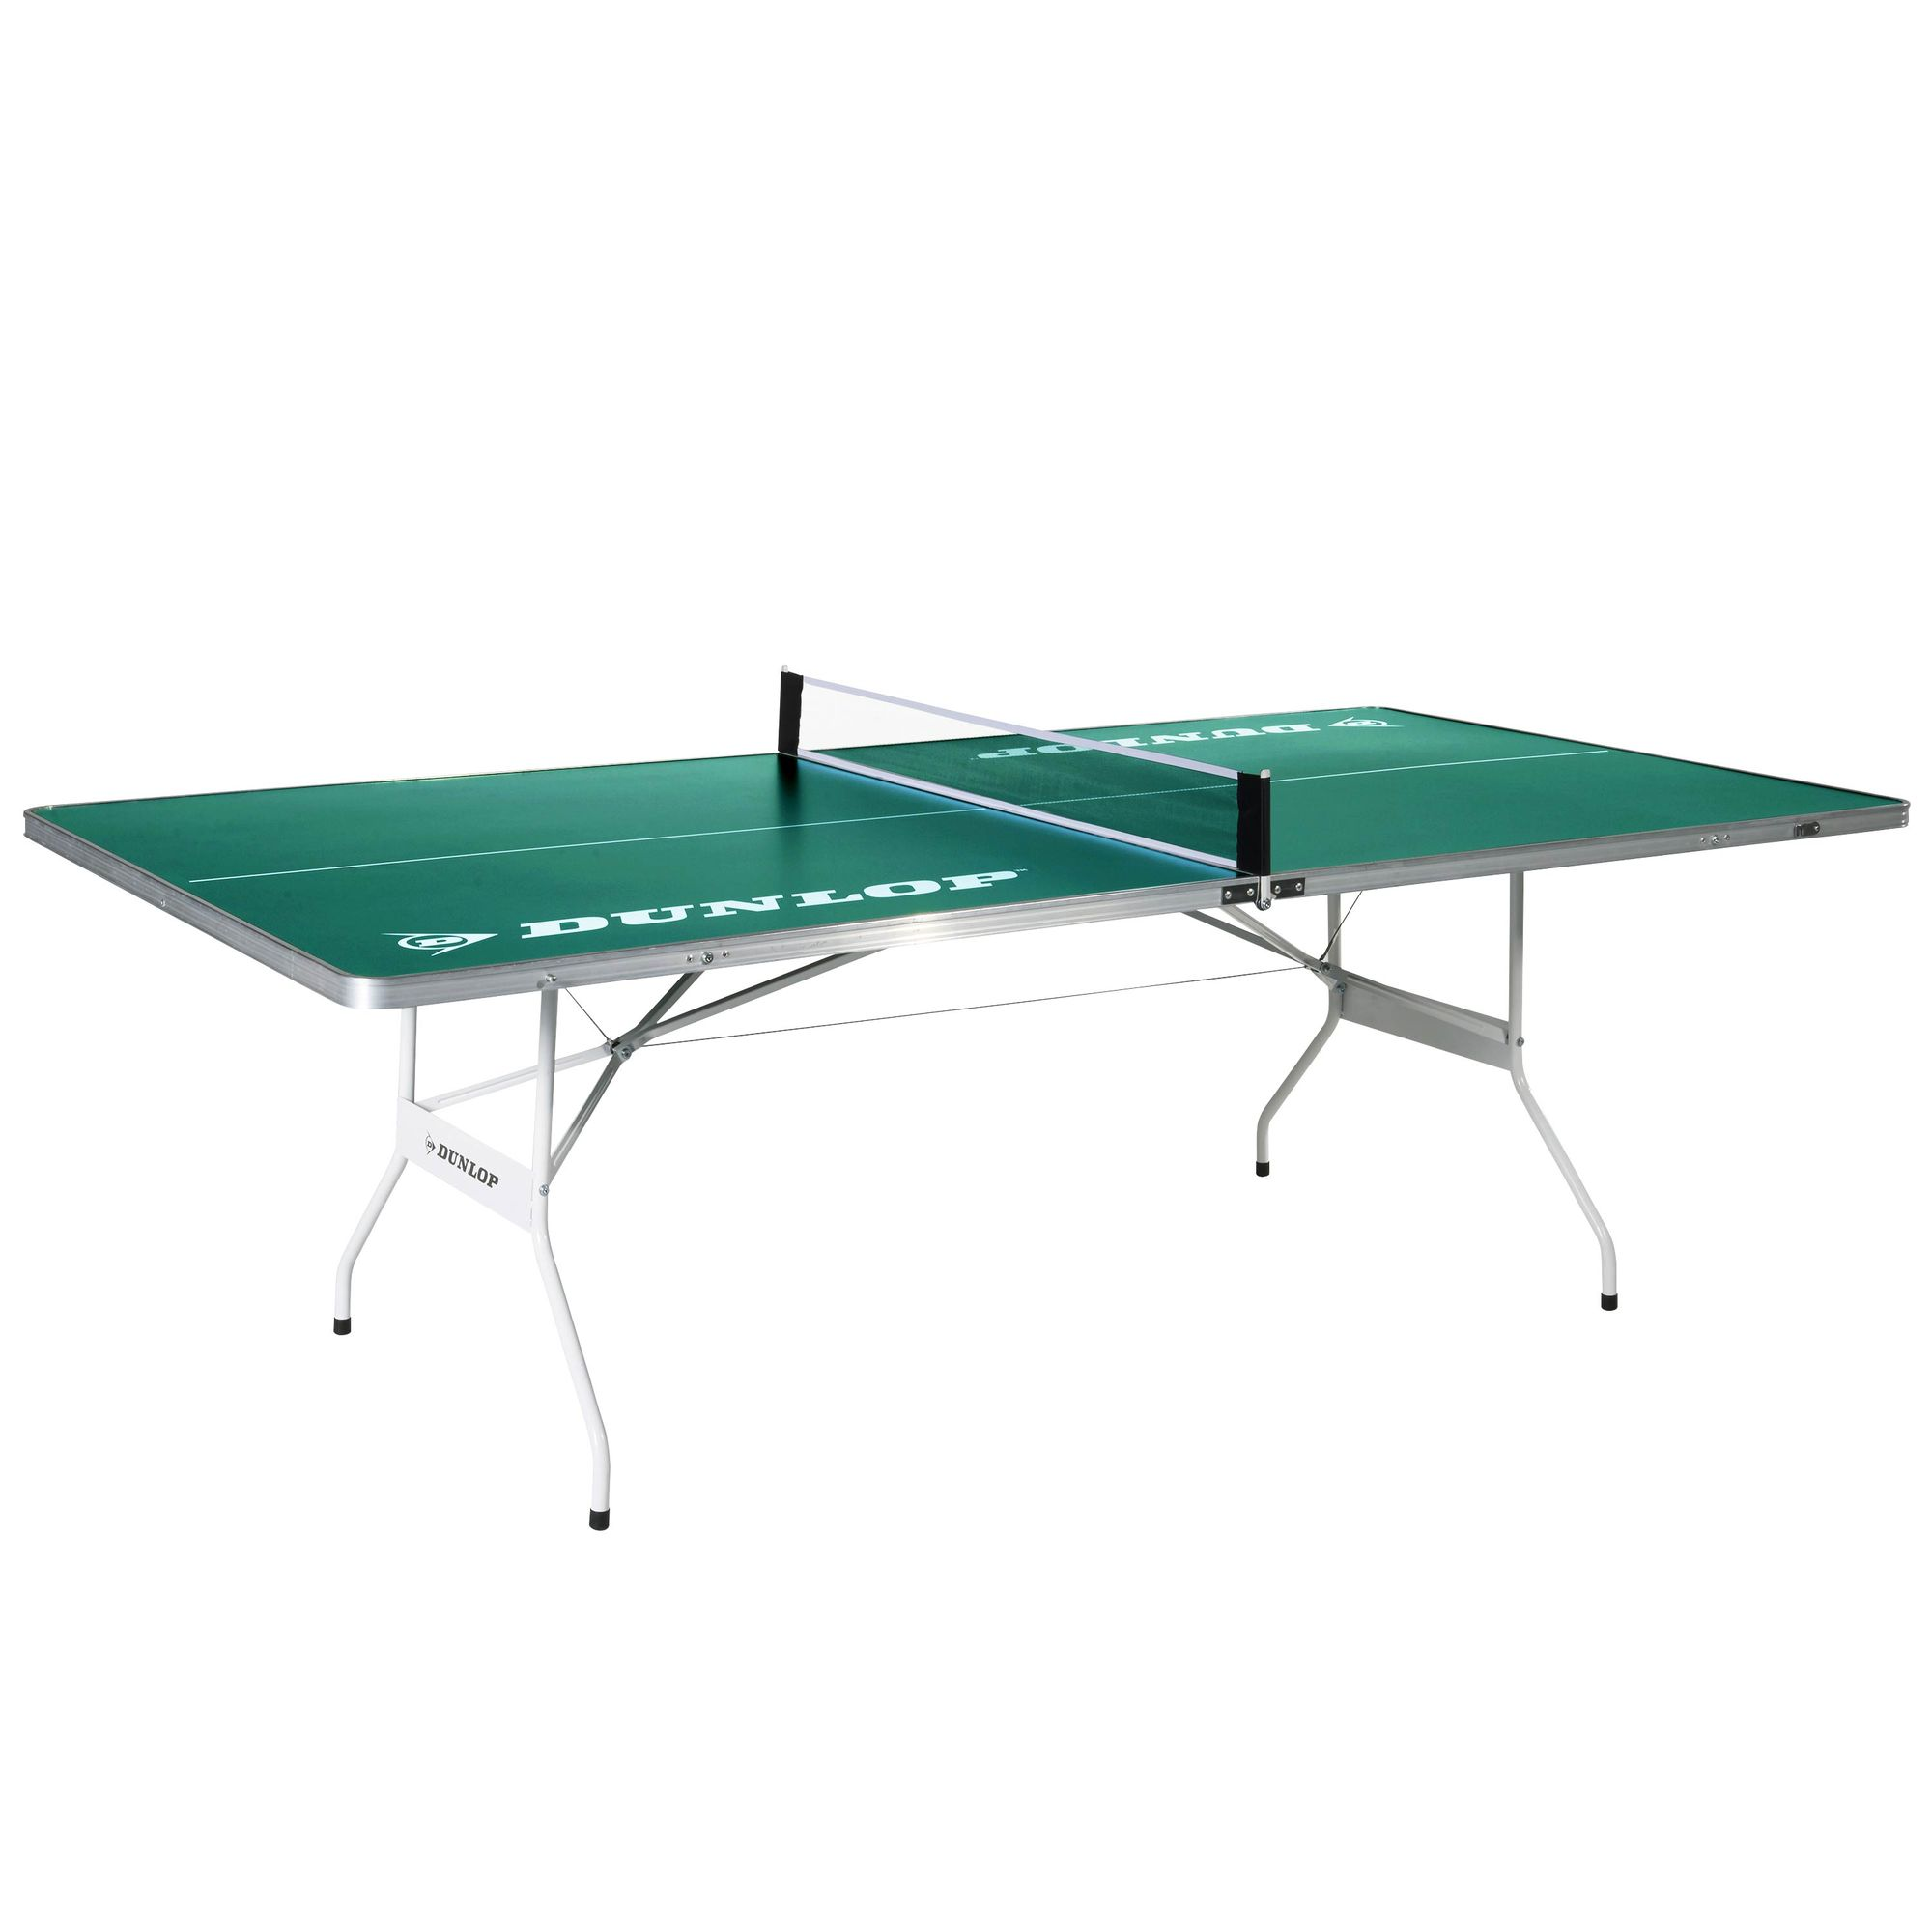 DUNLOP EZ-Fold Outdoor Table Tennis Table, 100% Pre-assembled, Portable, Ideal Size for Storage